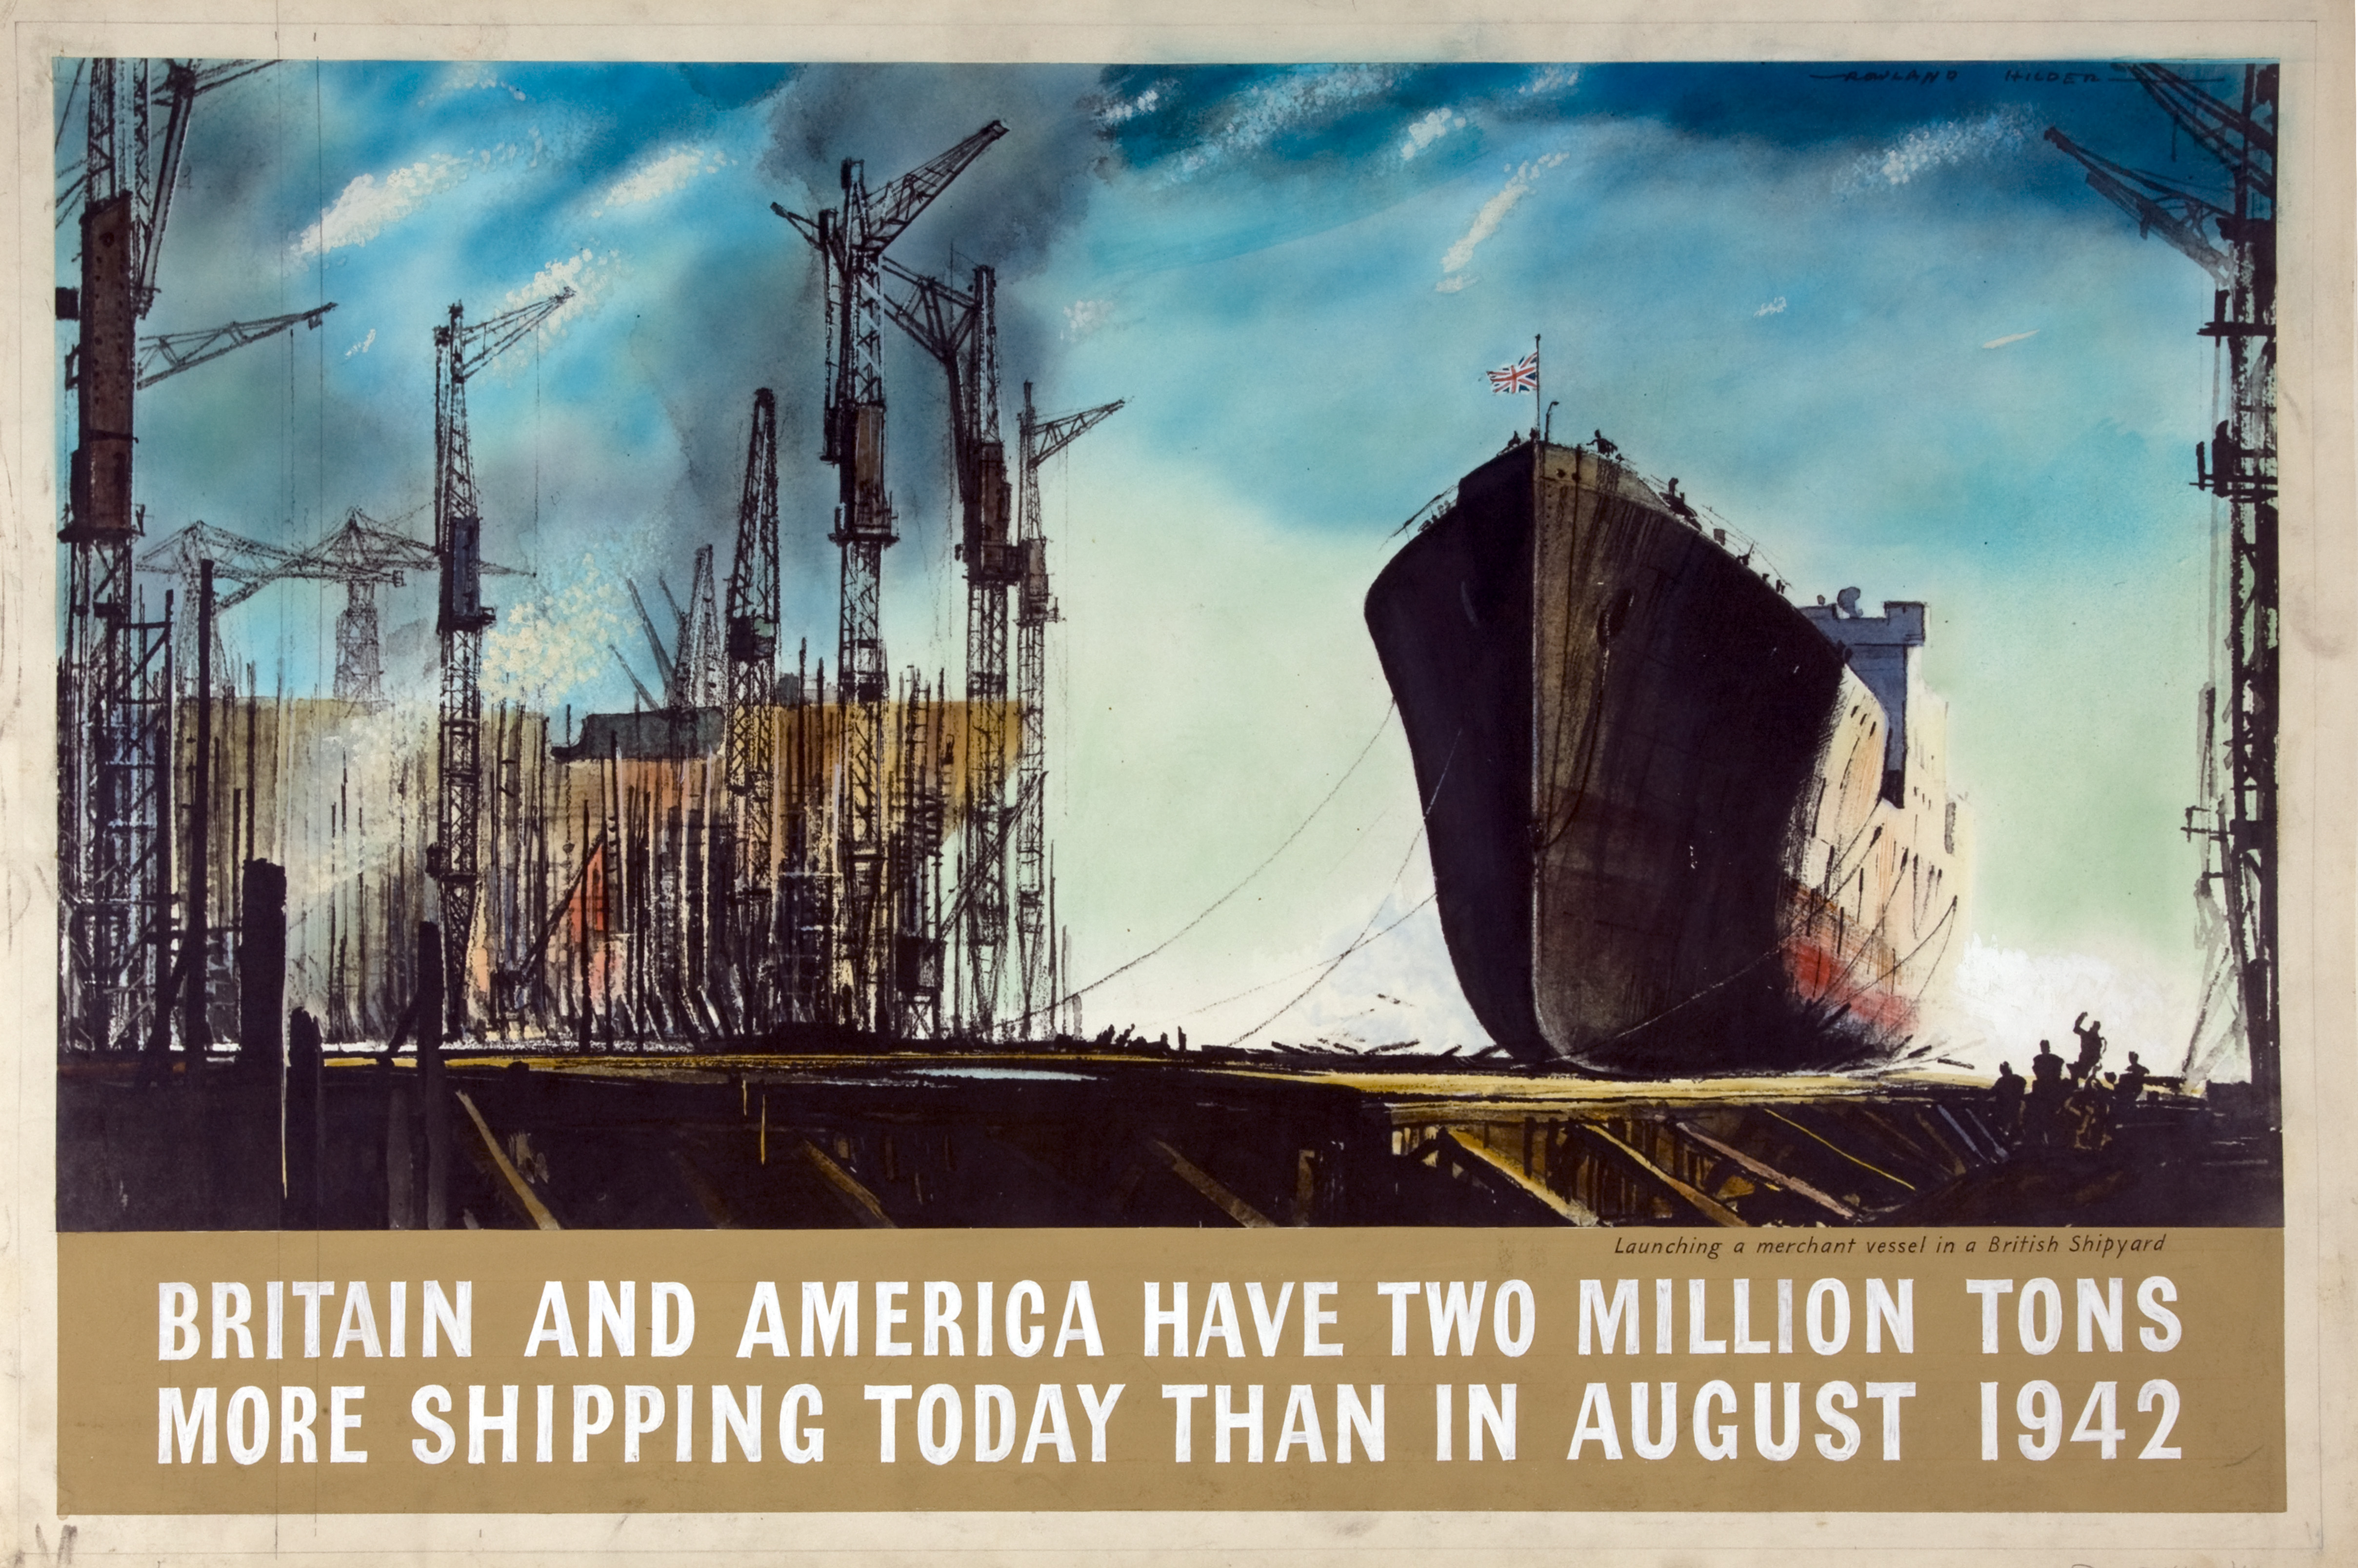 a poster with a central image showinbg a ship moving out of a busy shipyard